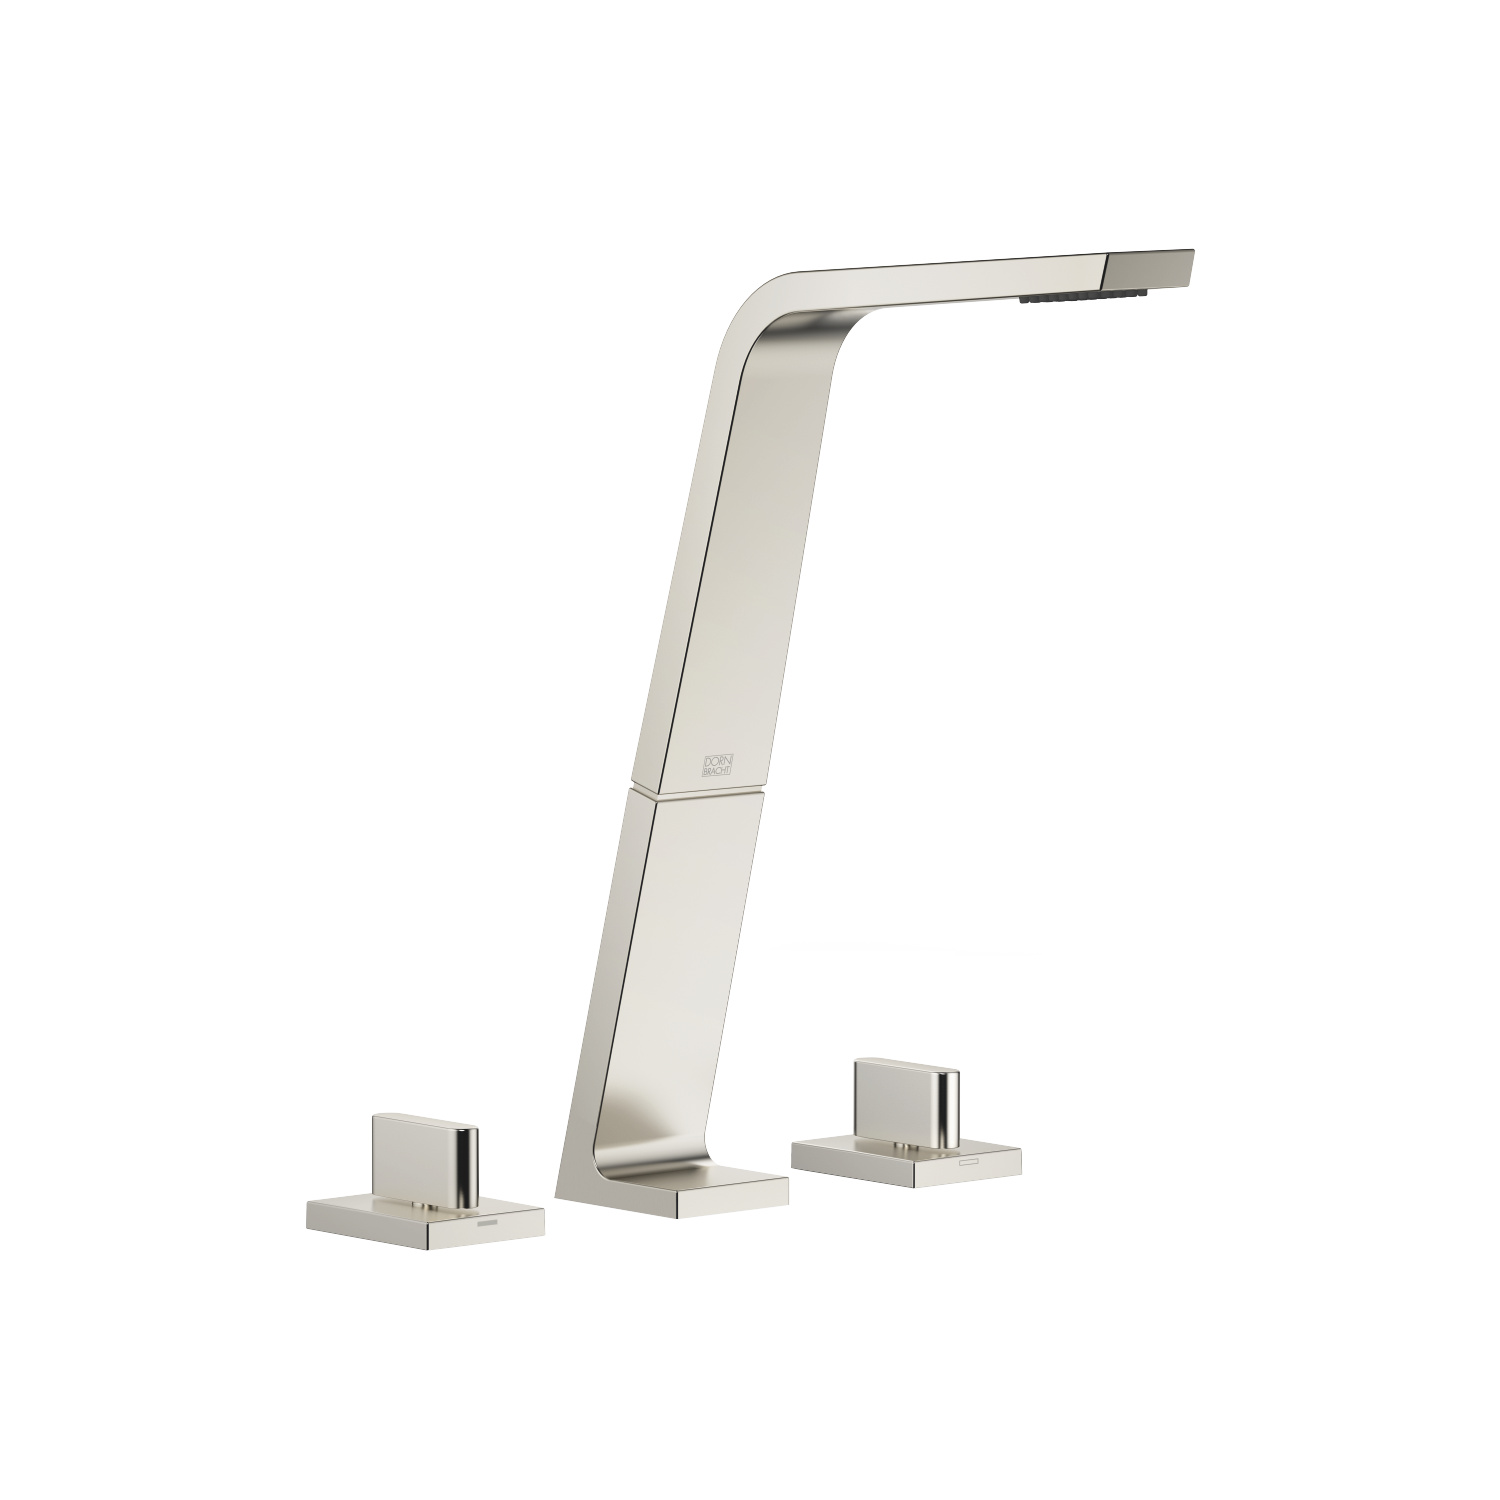 Three-hole lavatory mixer without drain - platinum matte